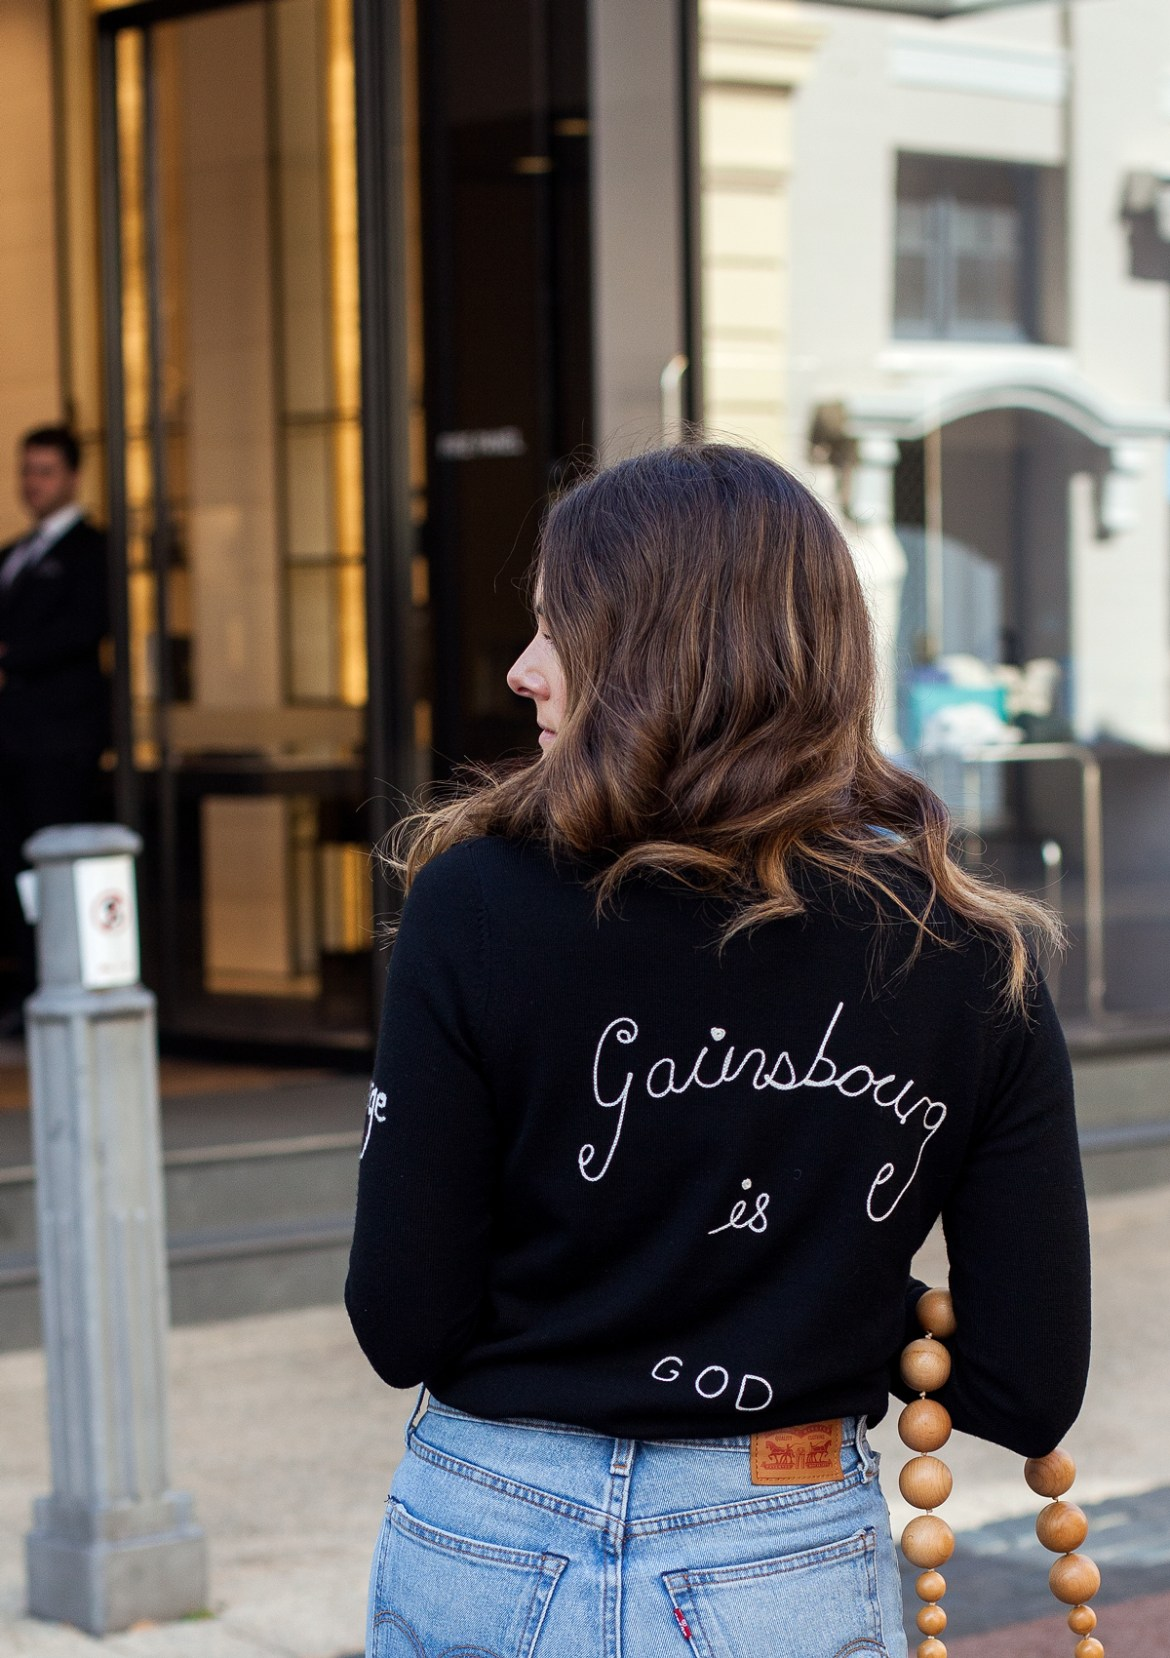 JE T'AIME JANE Gainsbourg is God sweater from Bella Freud back detail on Inspiring Wit fashion blog